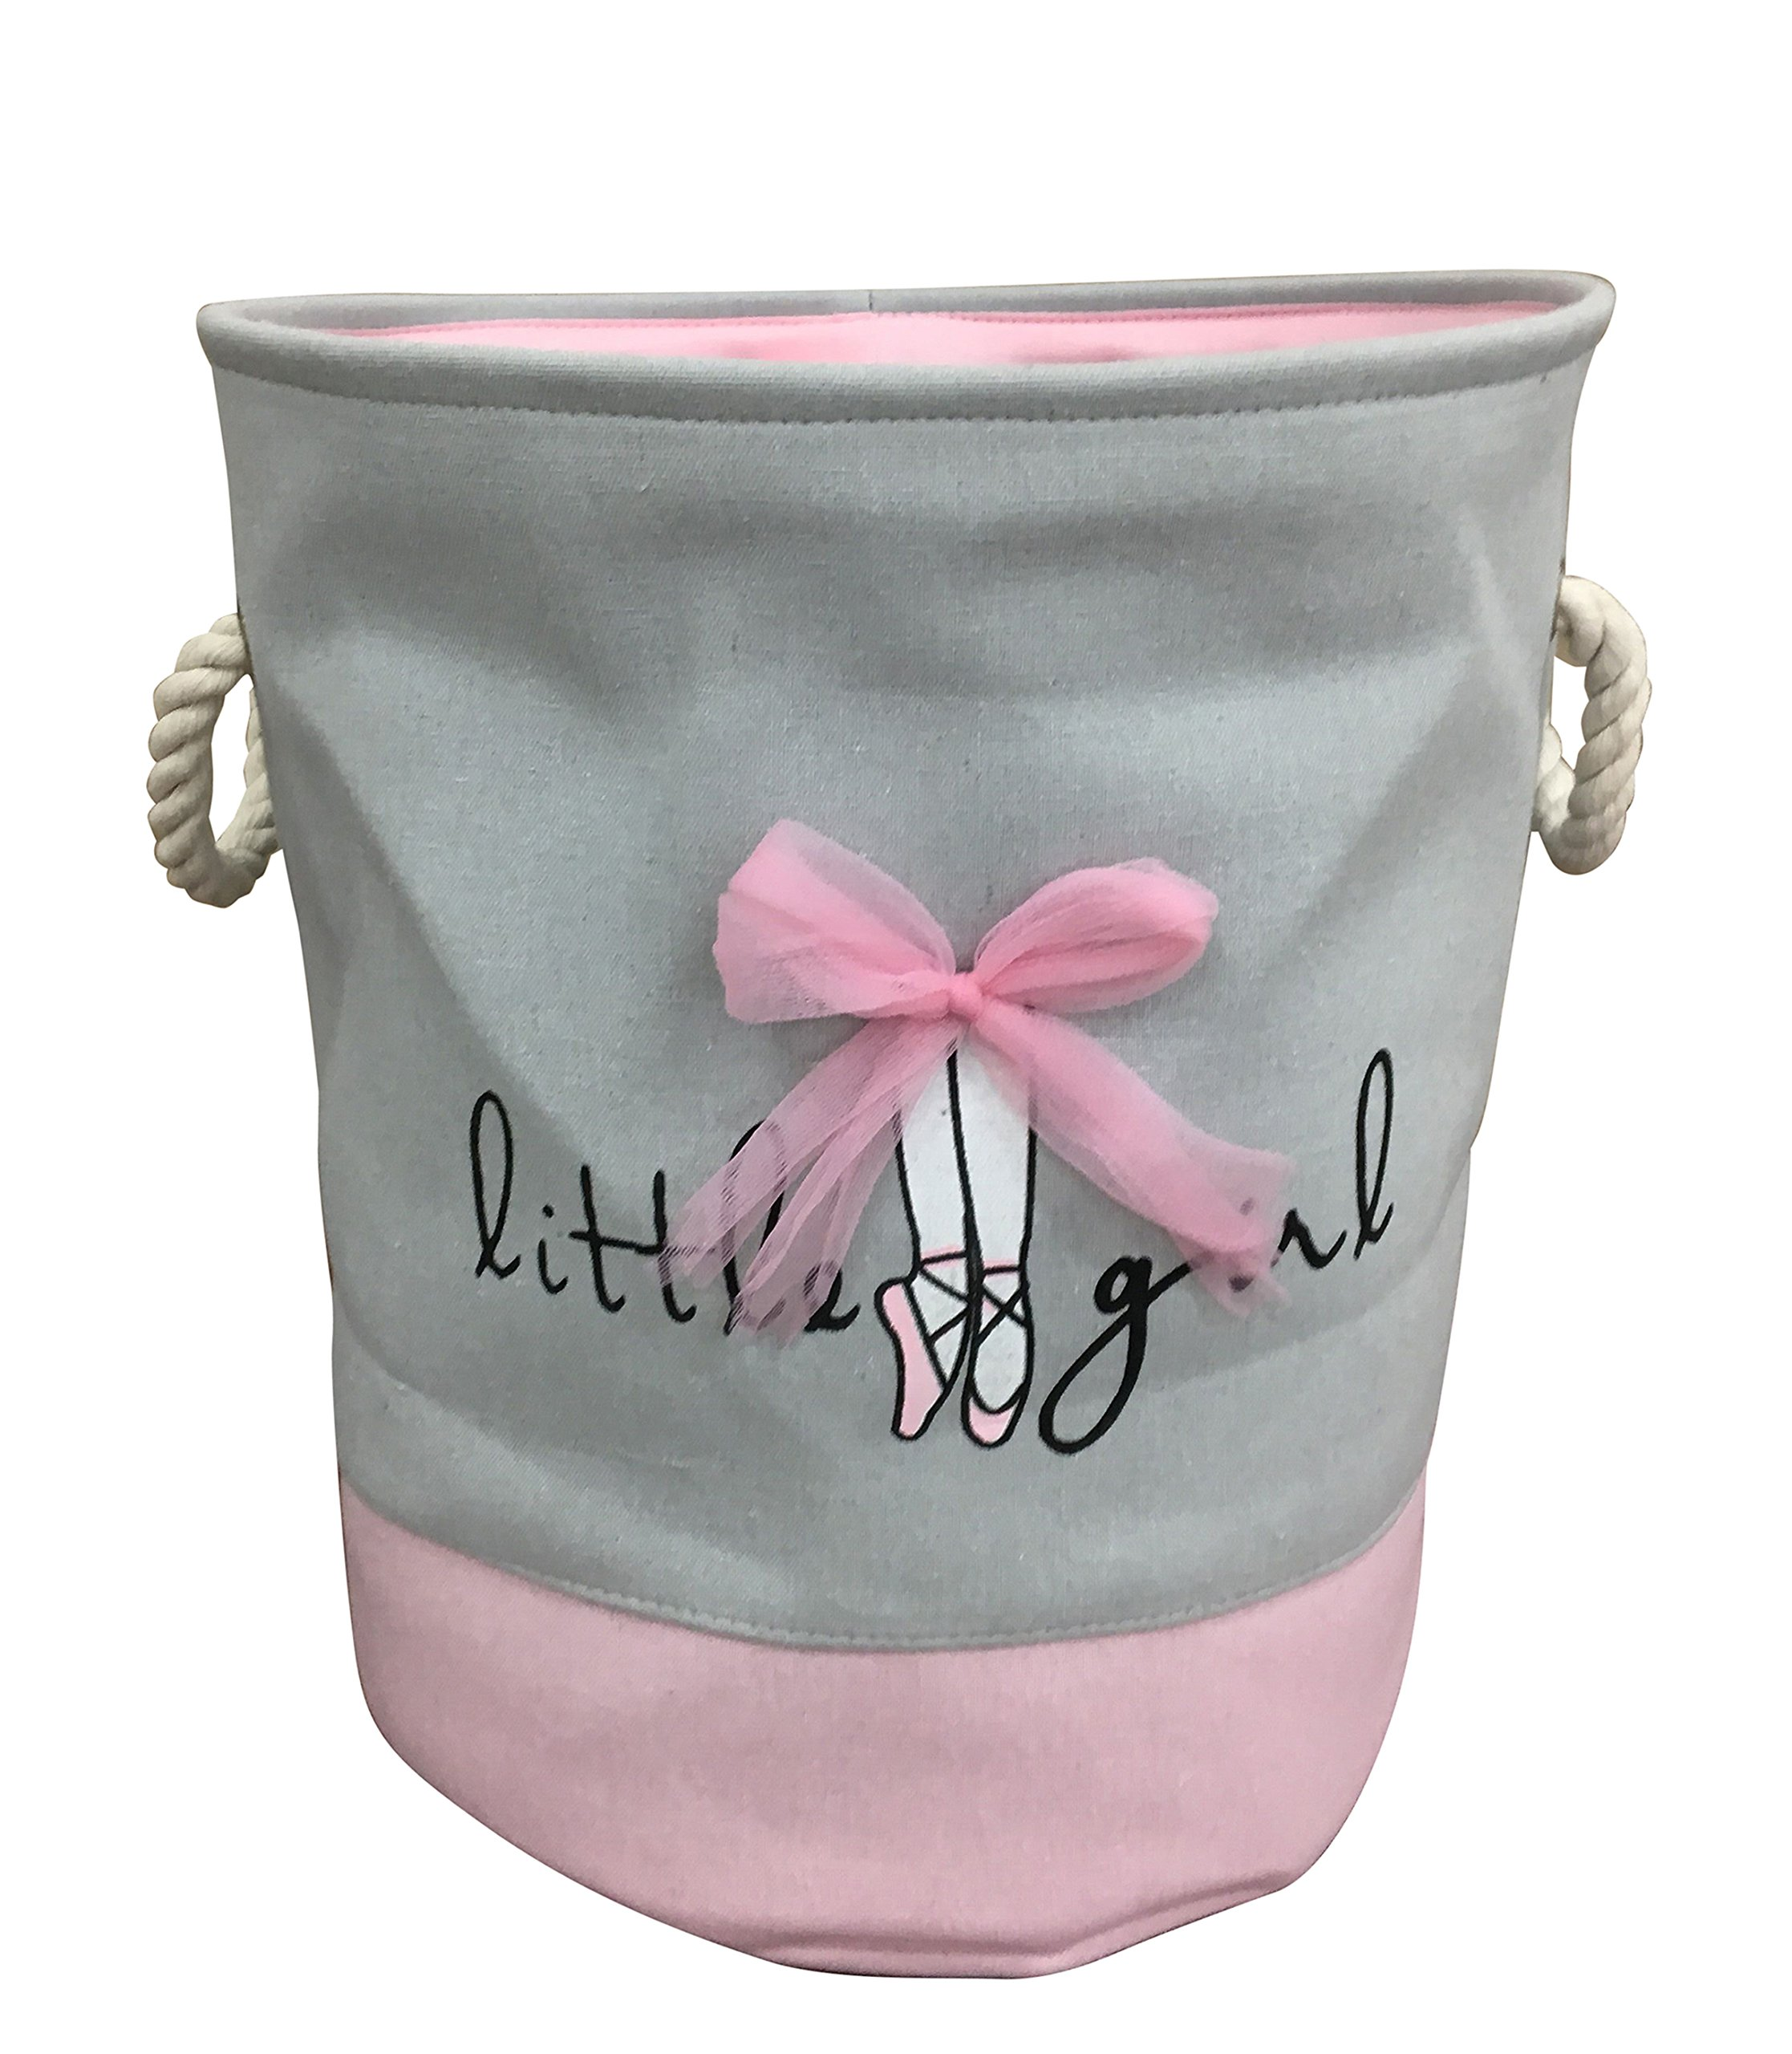 Pink Bins Cheap Pink Bread Bins Find Pink Bread Bins Deals On Line At